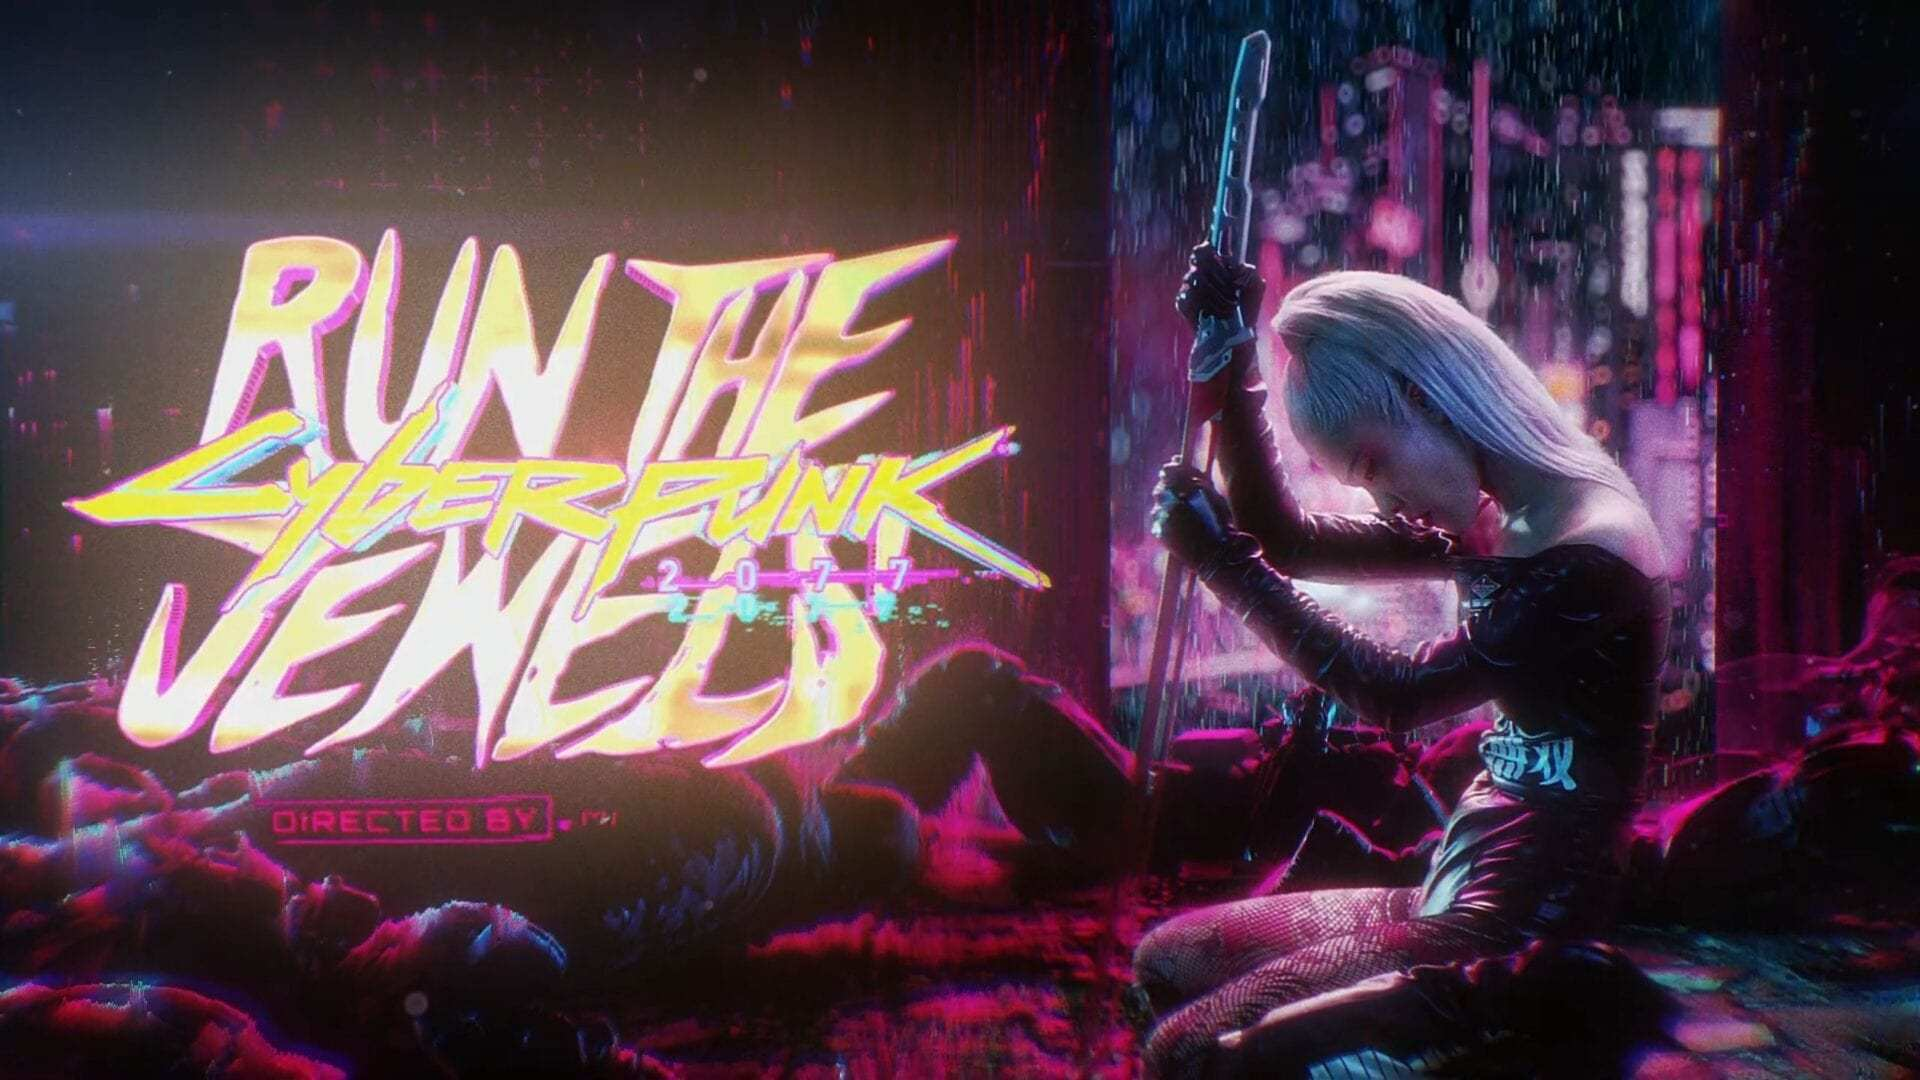 Cyberpunk 2077 Gets Psychedelic Music Video Featuring Run the Jewels